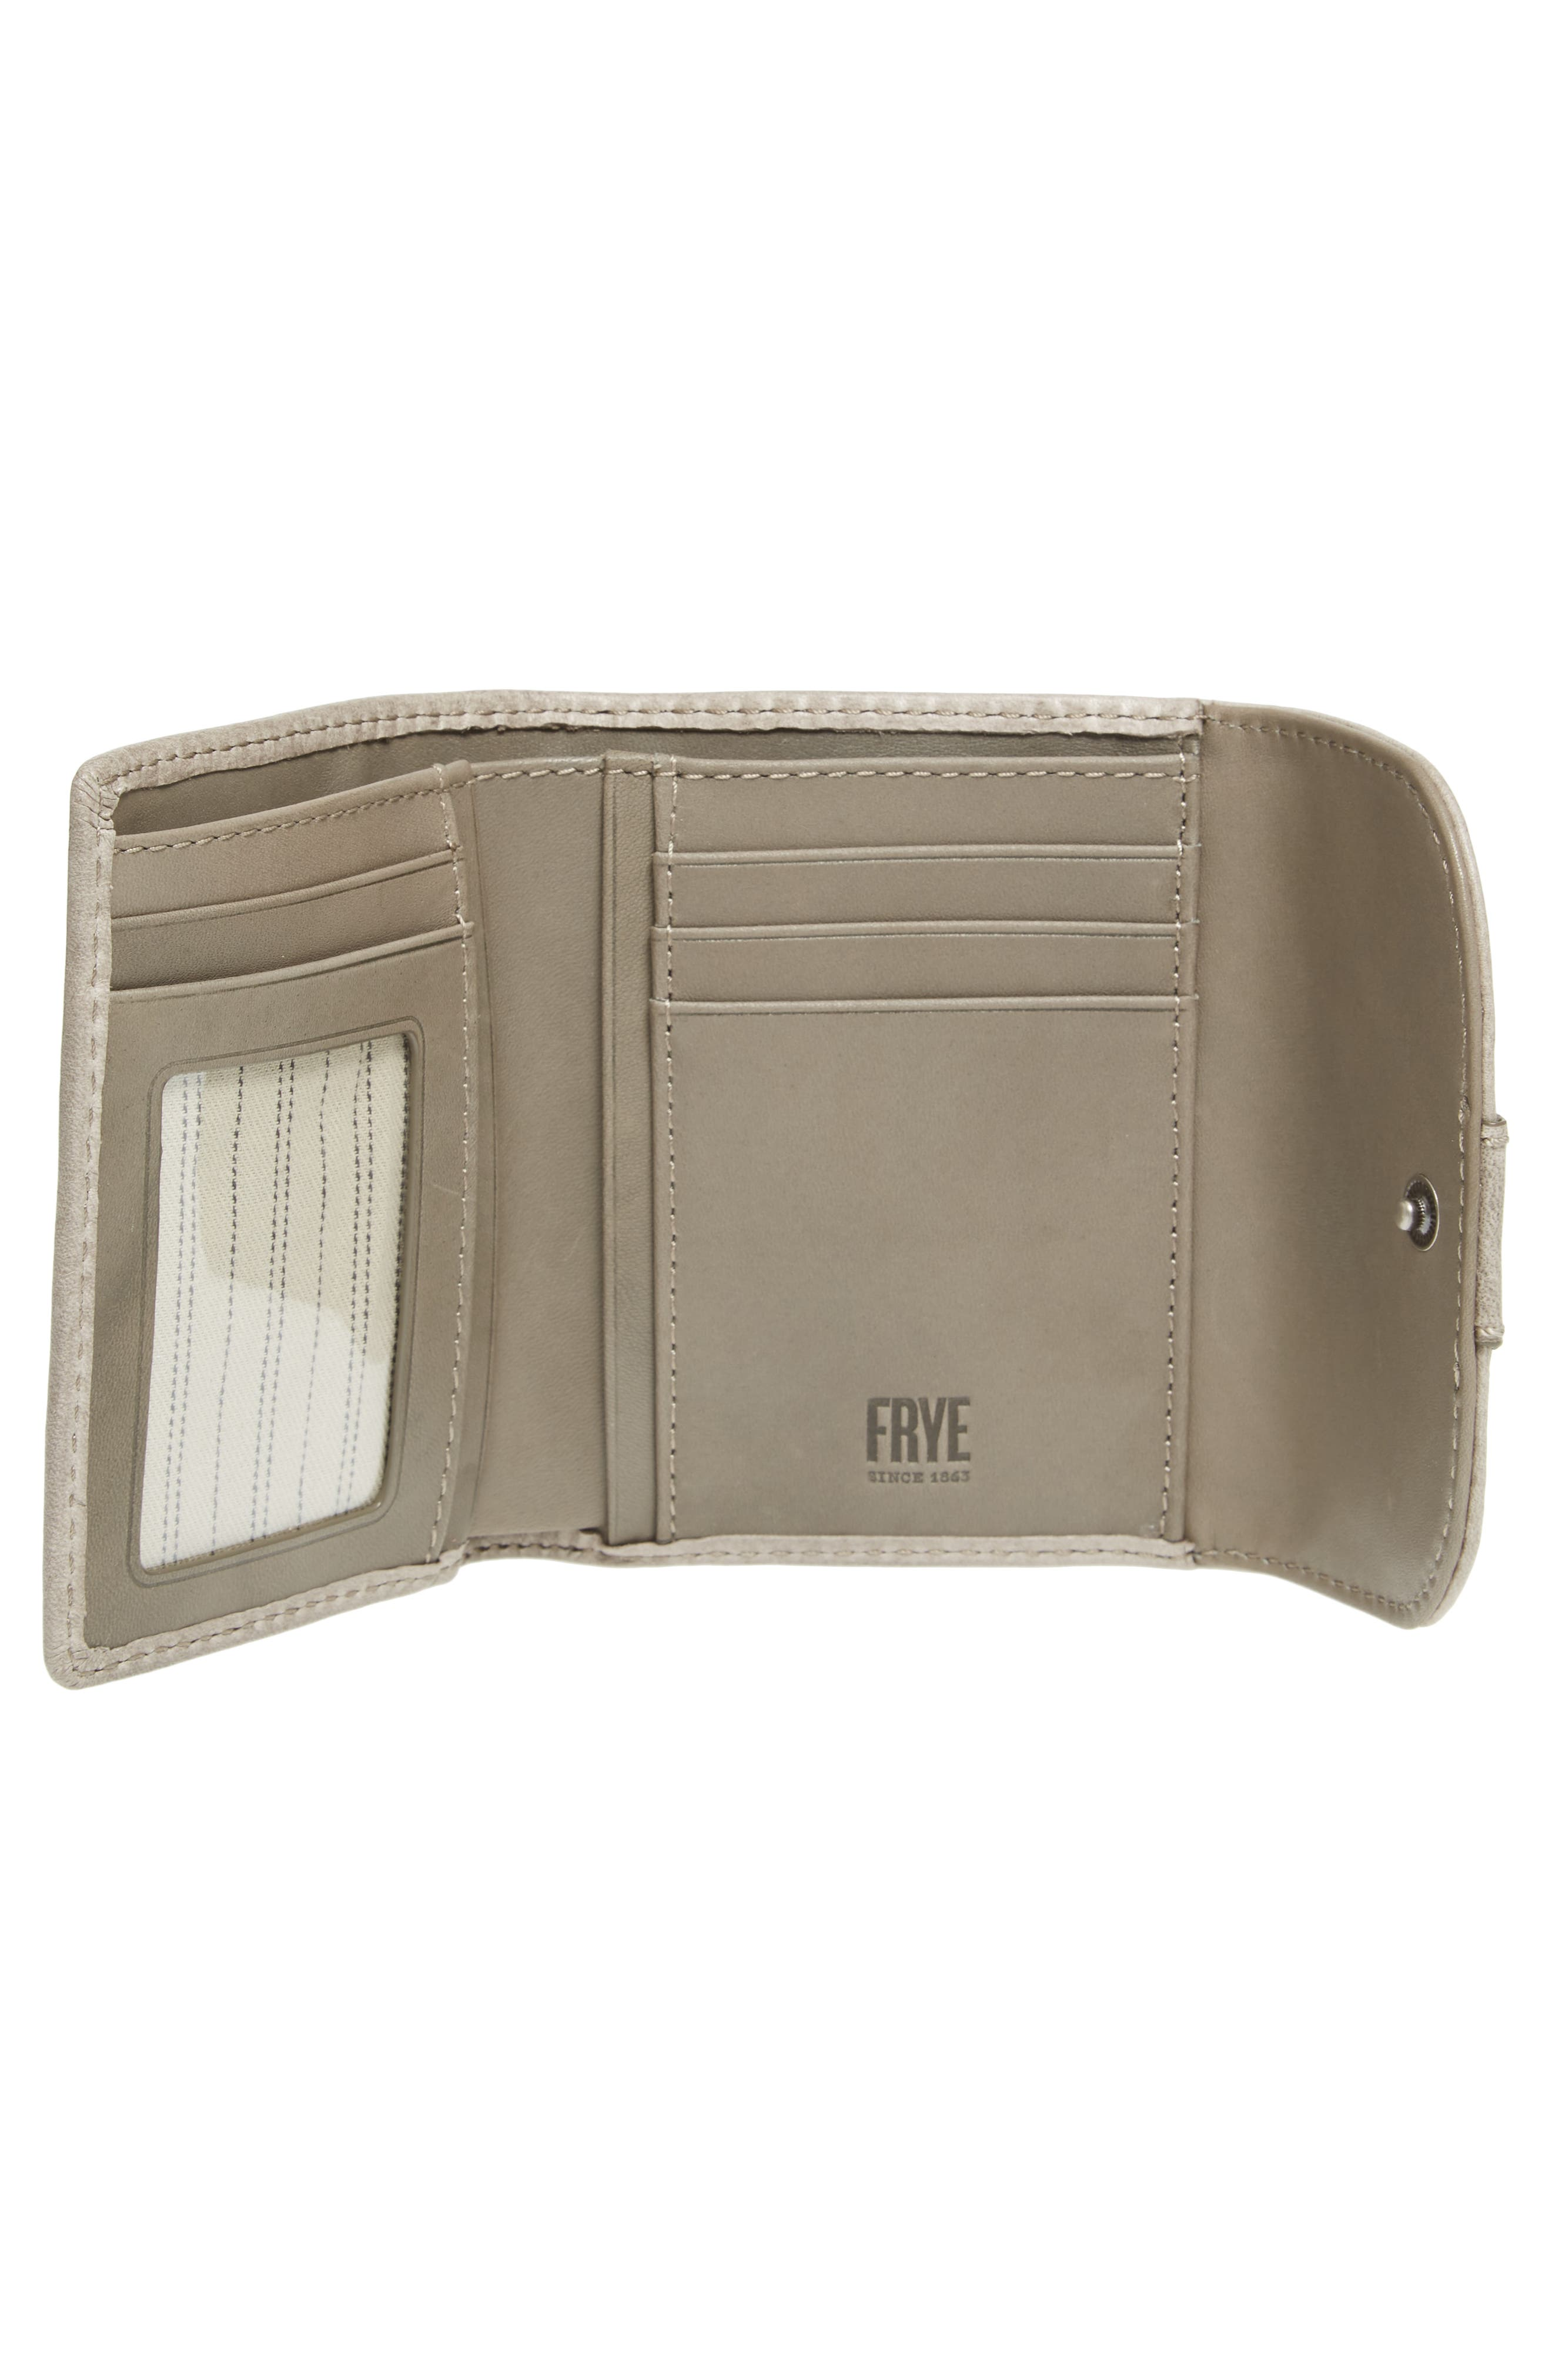 FRYE,                             Melissa Medium Trifold Leather Wallet,                             Alternate thumbnail 2, color,                             020